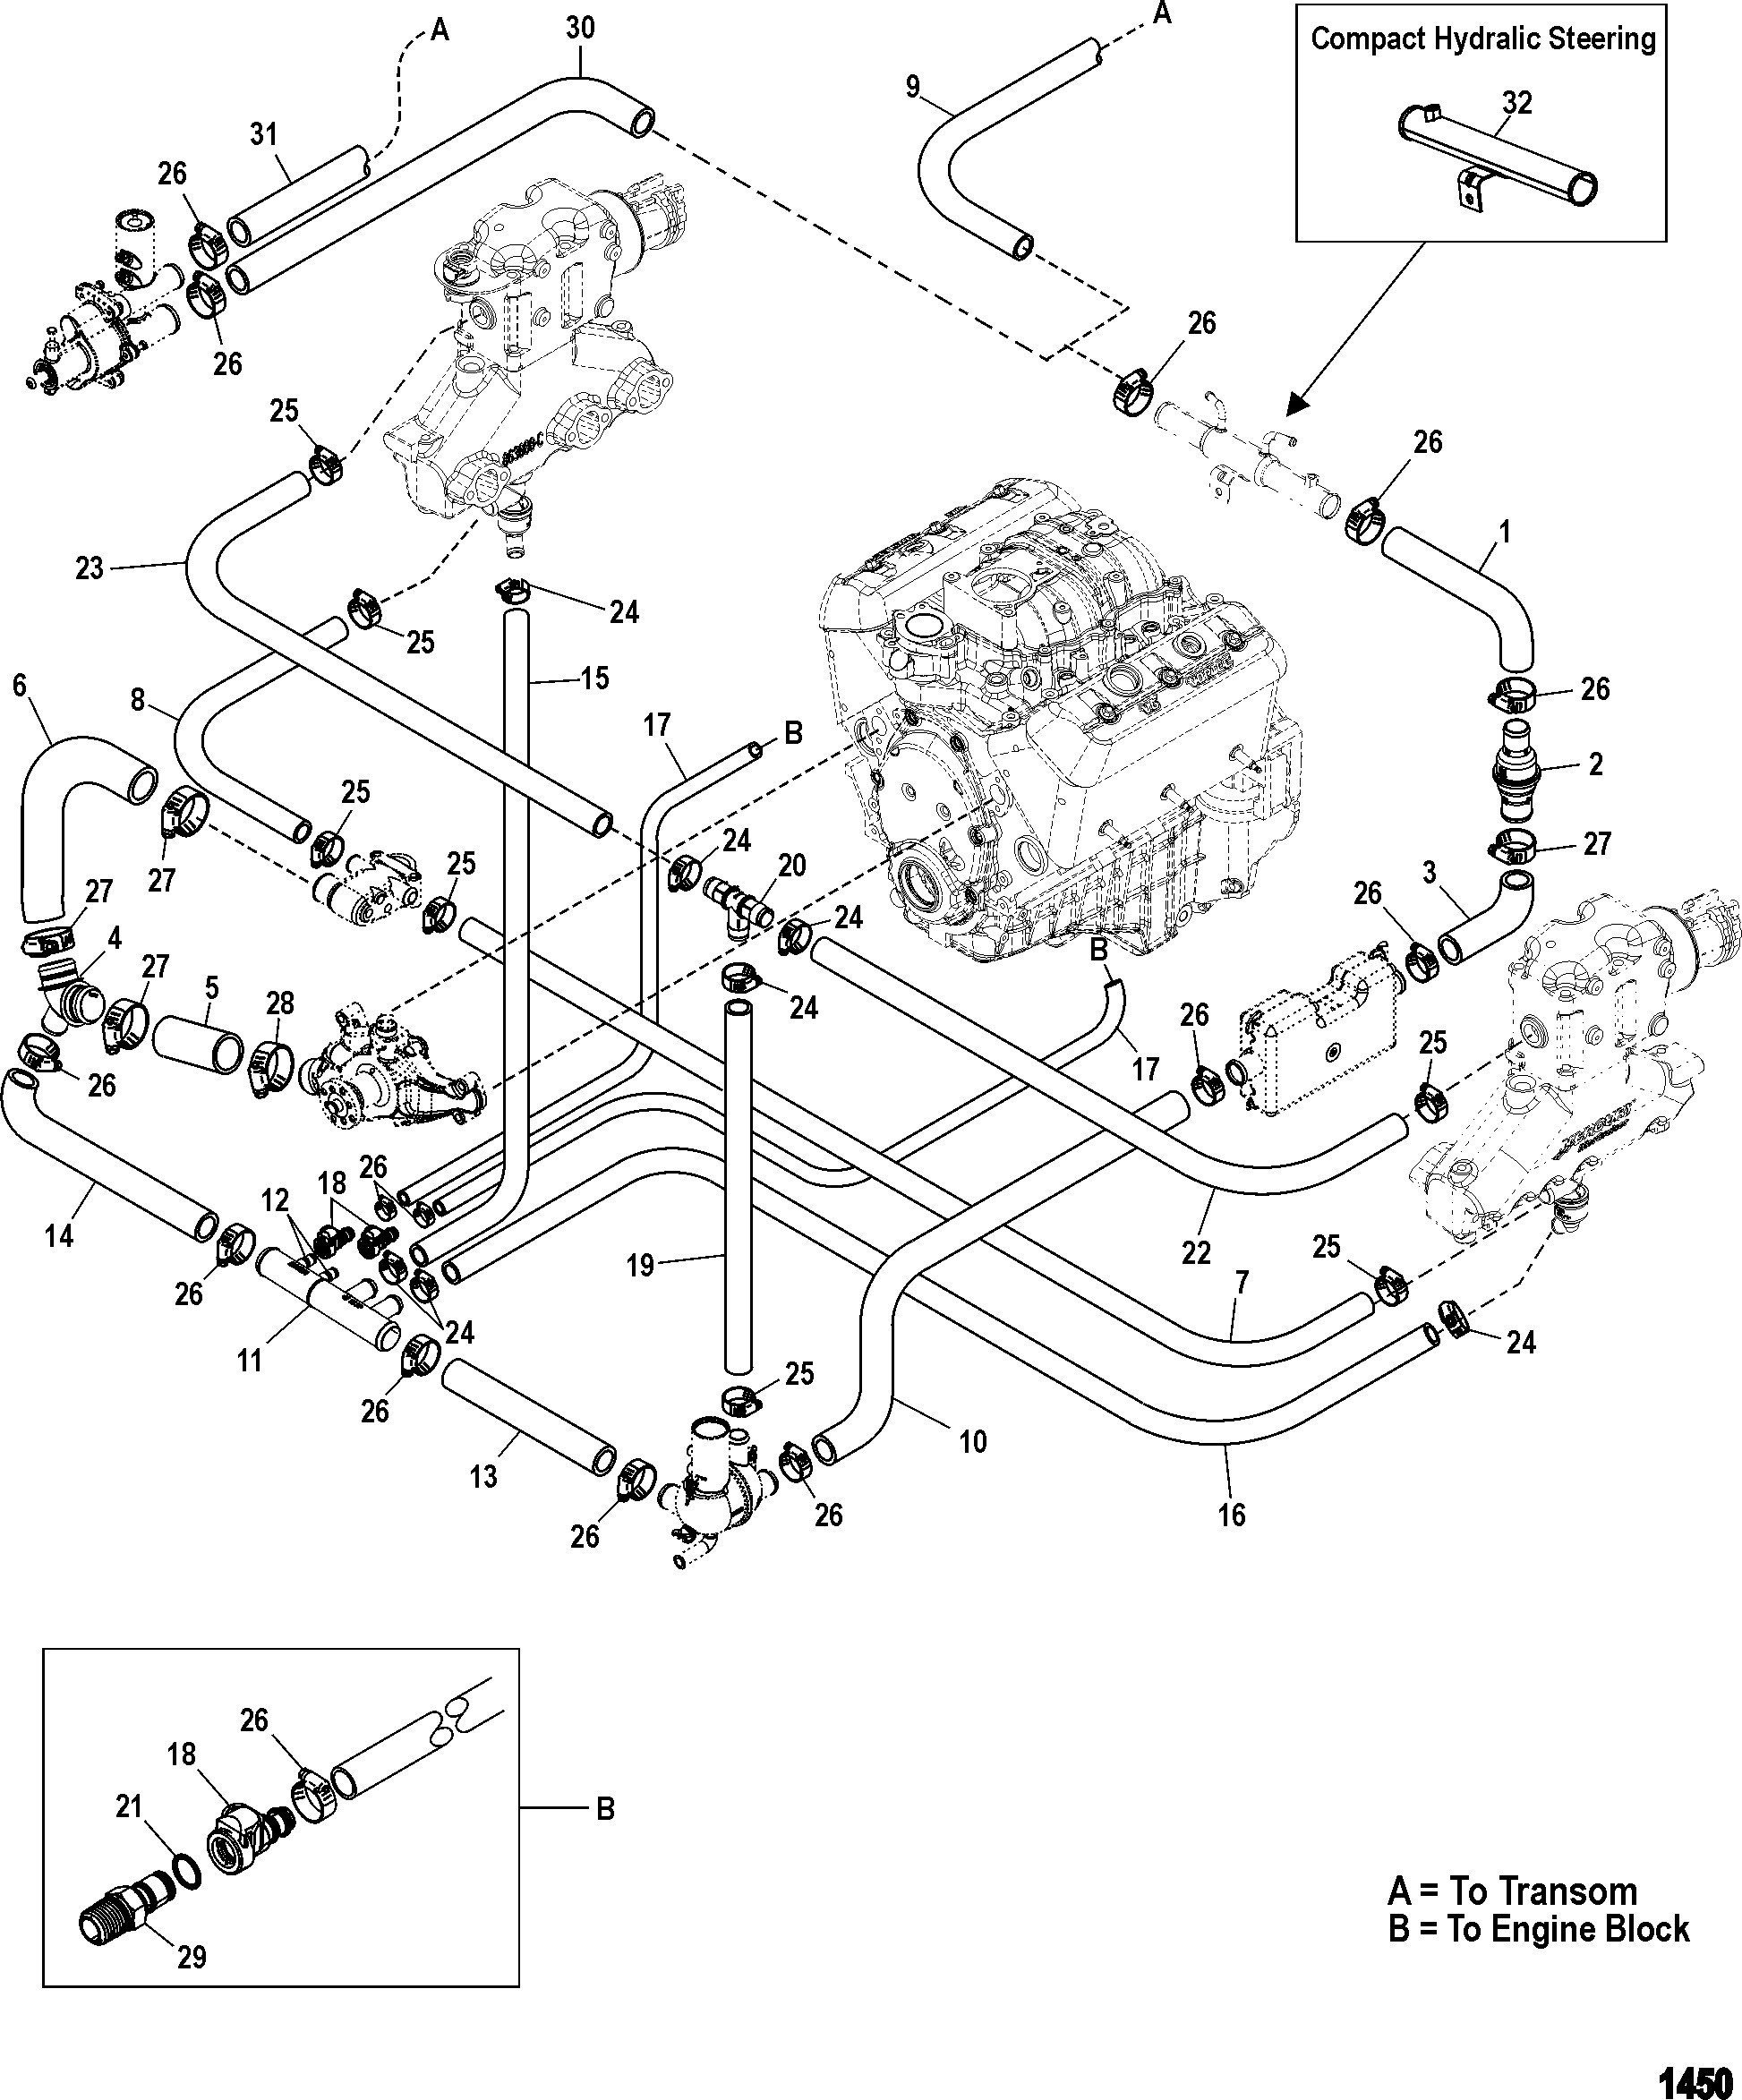 4 3 vortec engine diagram how to replace a freeze plug a gm 4 3 v6 rh detoxicrecenze Chevrolet 3 4 Engine Diagram Chevy 3 1 Engine Diagram